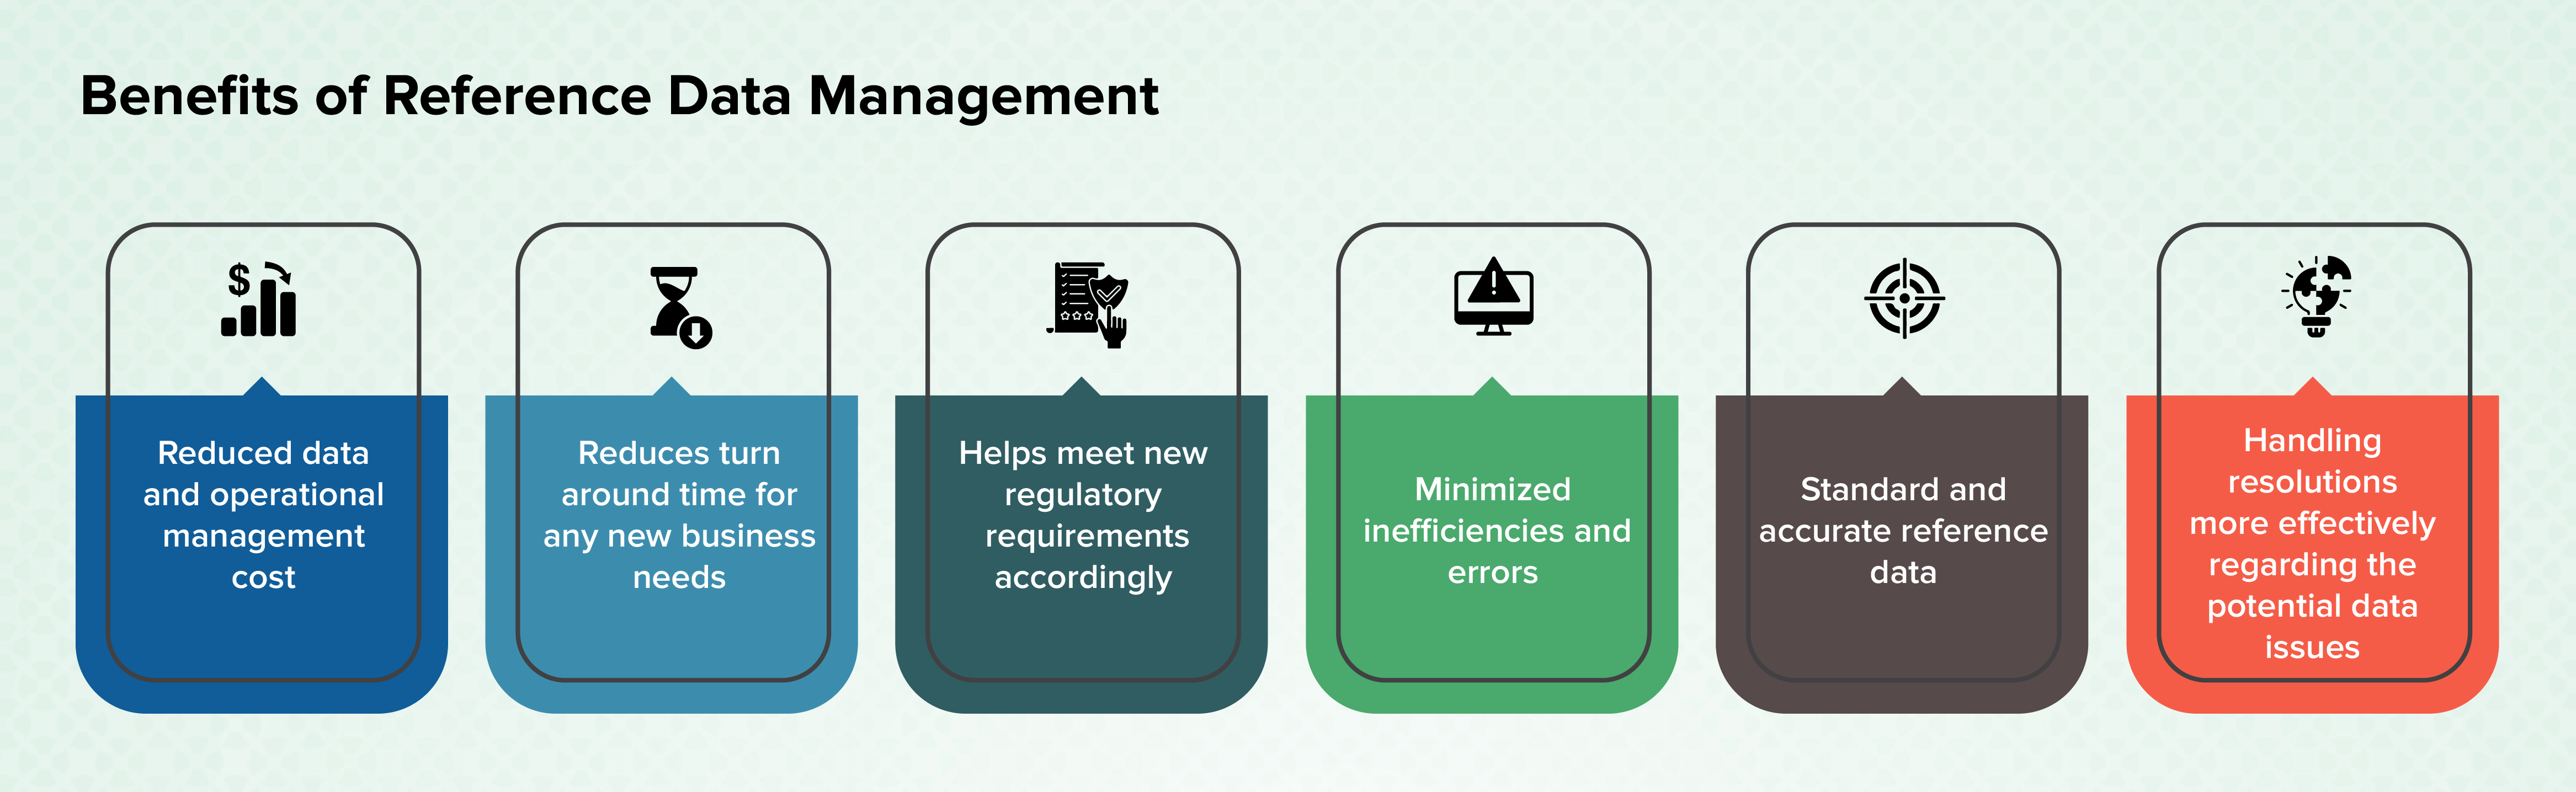 Benefits of Reference Data Management